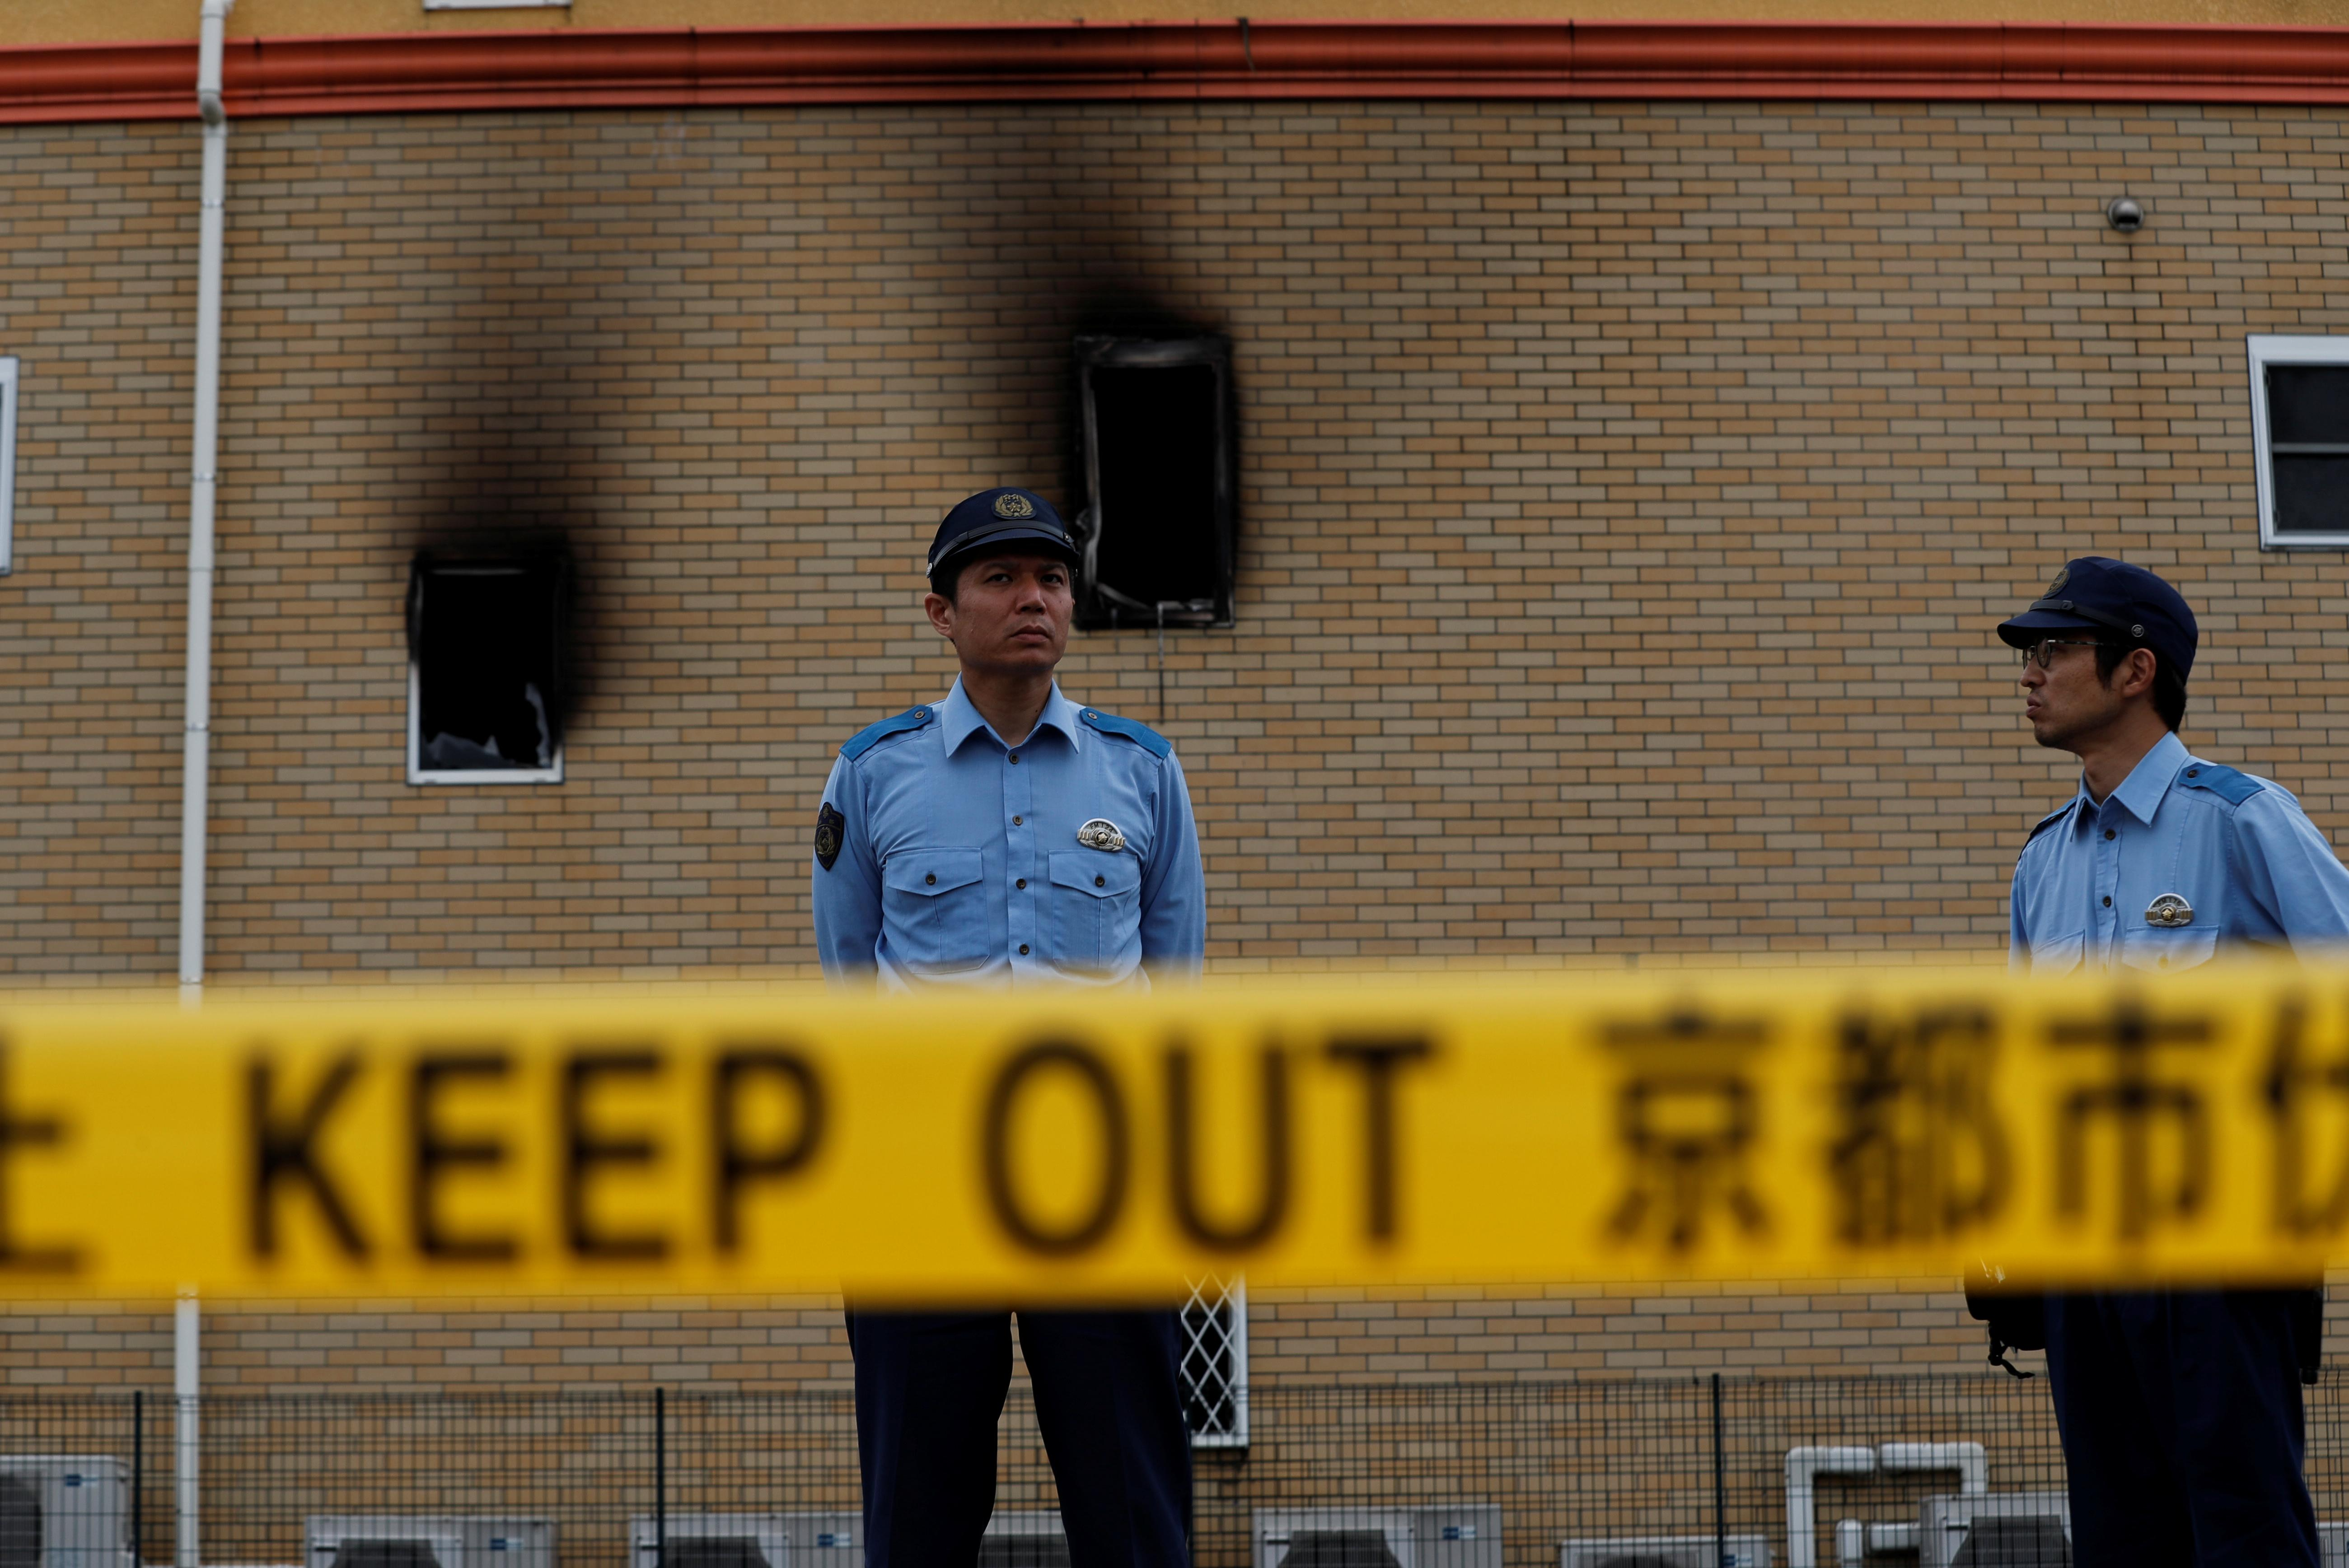 Japan officials hunt for reasons behind fire that killed 34